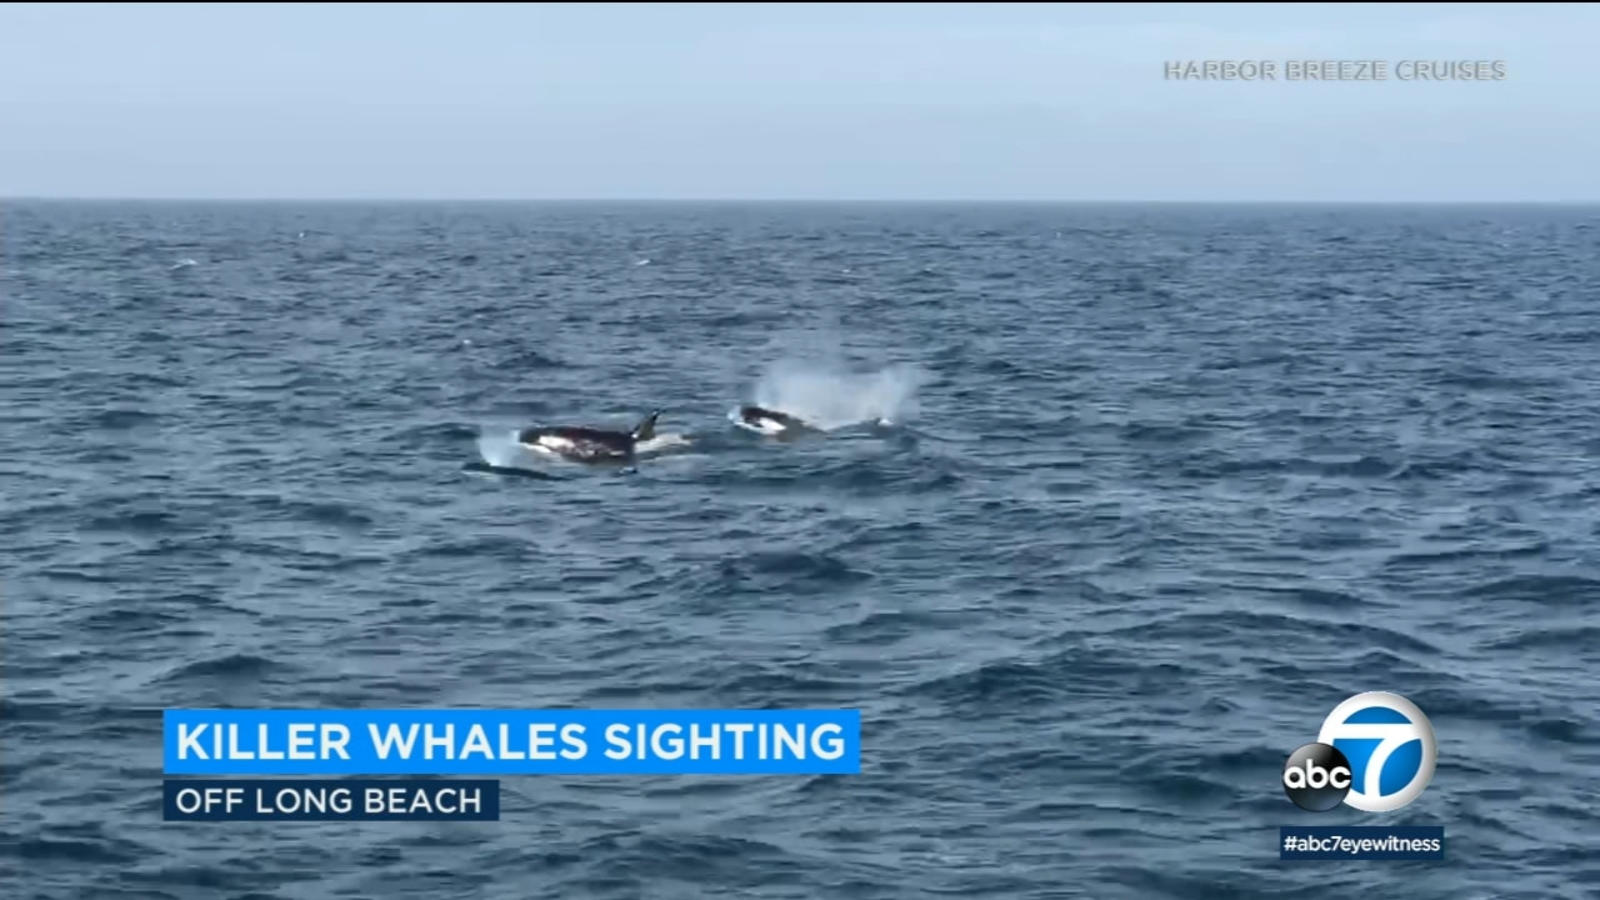 A rare sight: killer whales in the waters off the Southern California coast